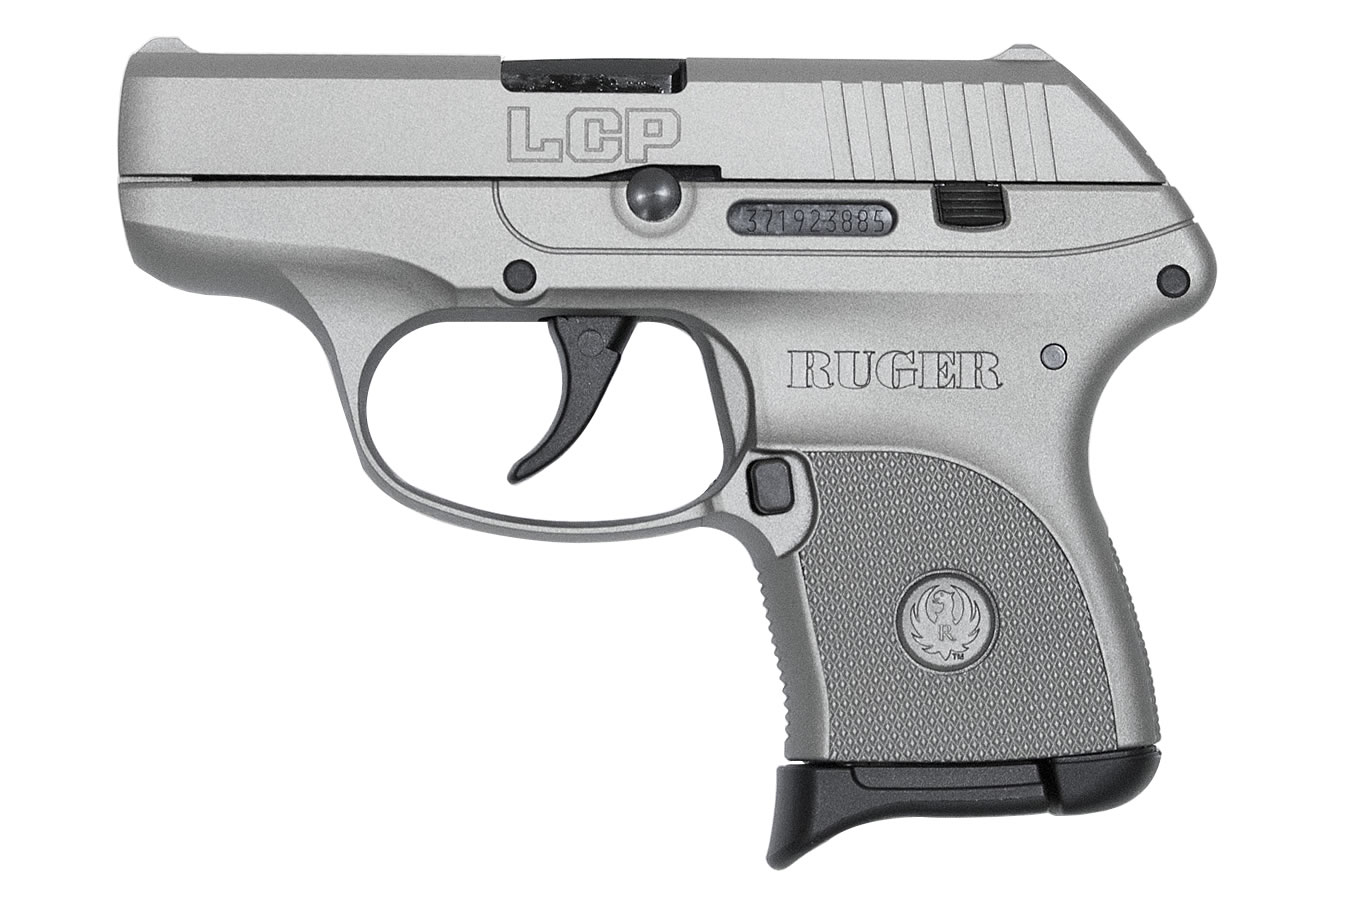 Ruger Lcp 380 Auto Centerfire Pistol With Savage Silver Cerakote Finish